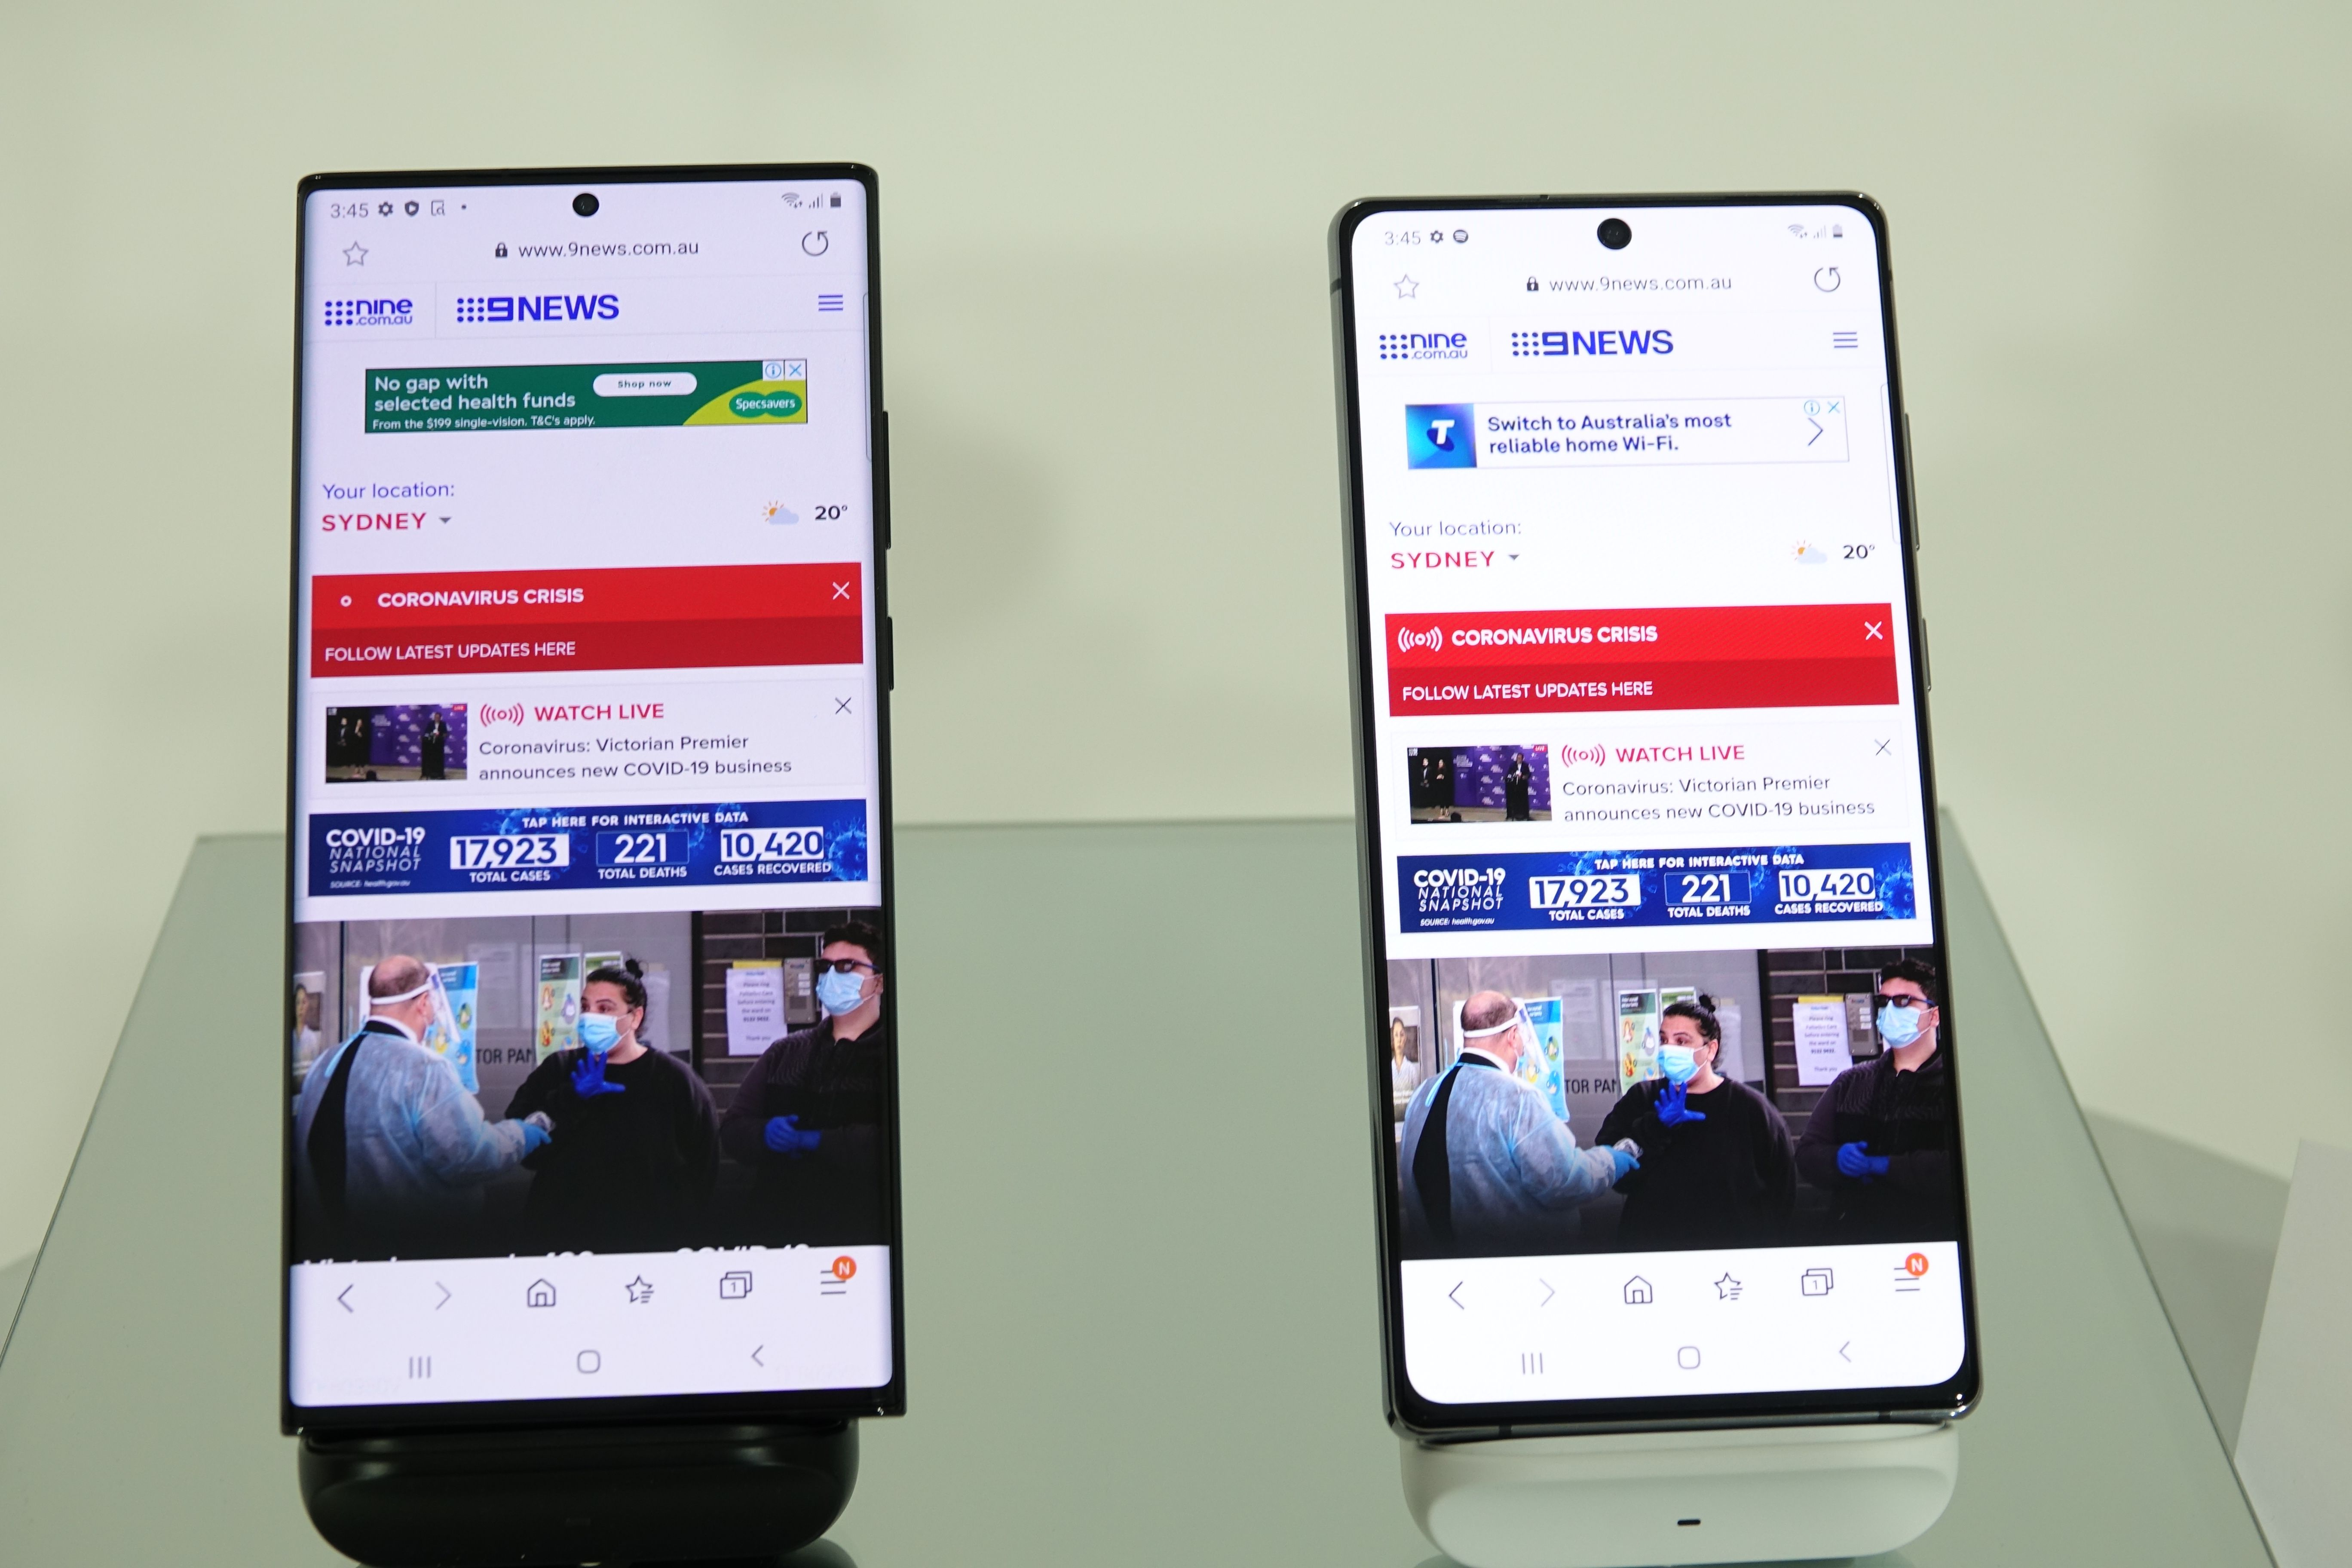 Samsung reveals new Galaxy products